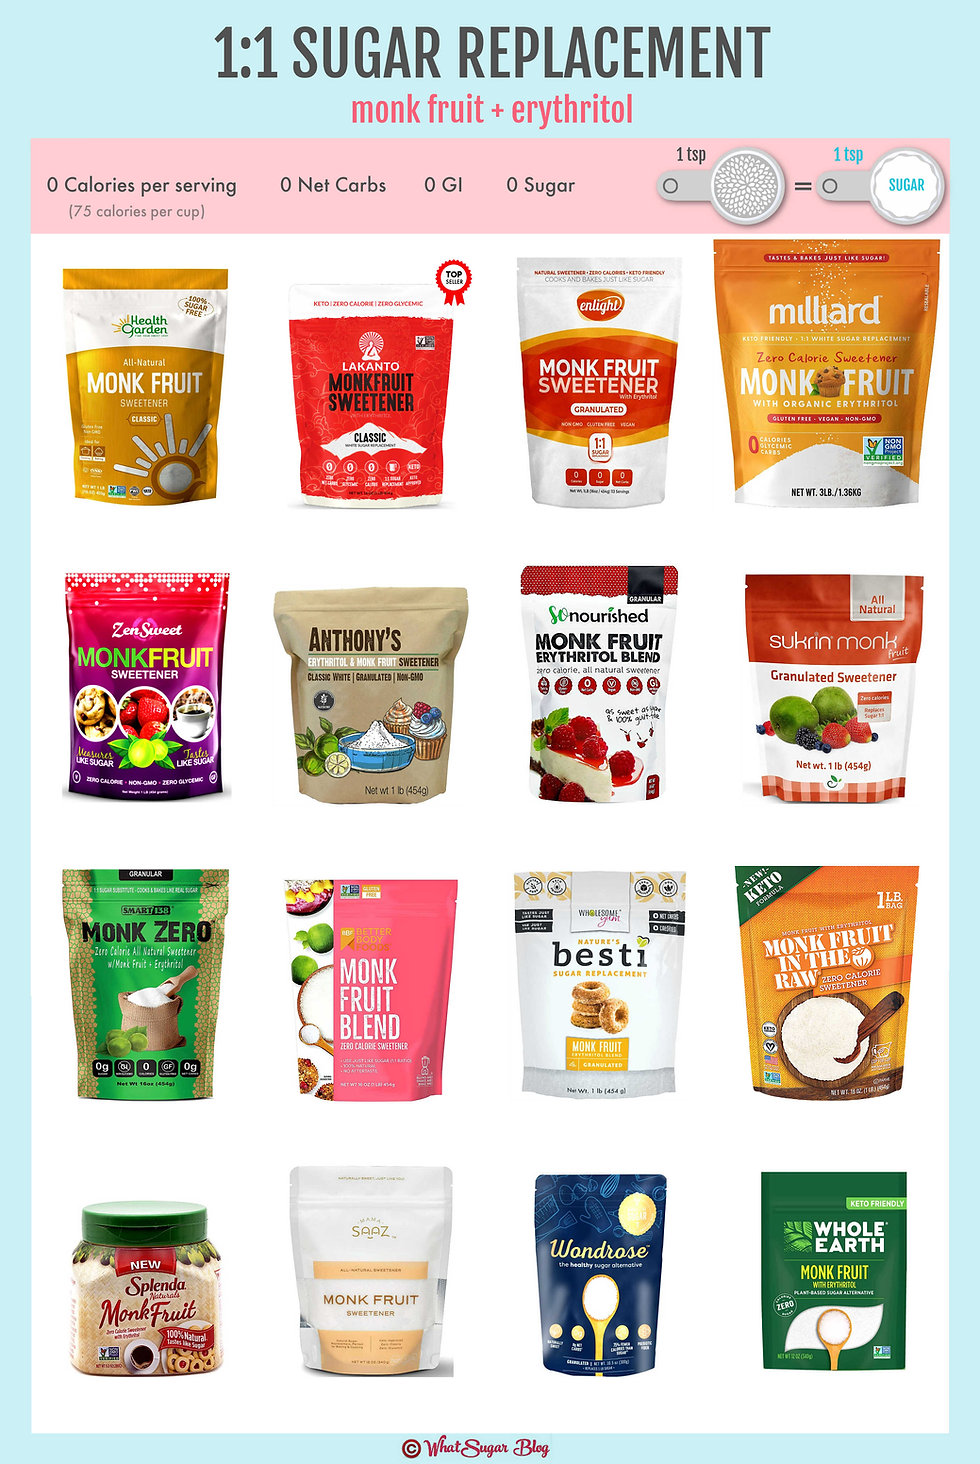 How many carbs in Monk Fruit Sweetener?